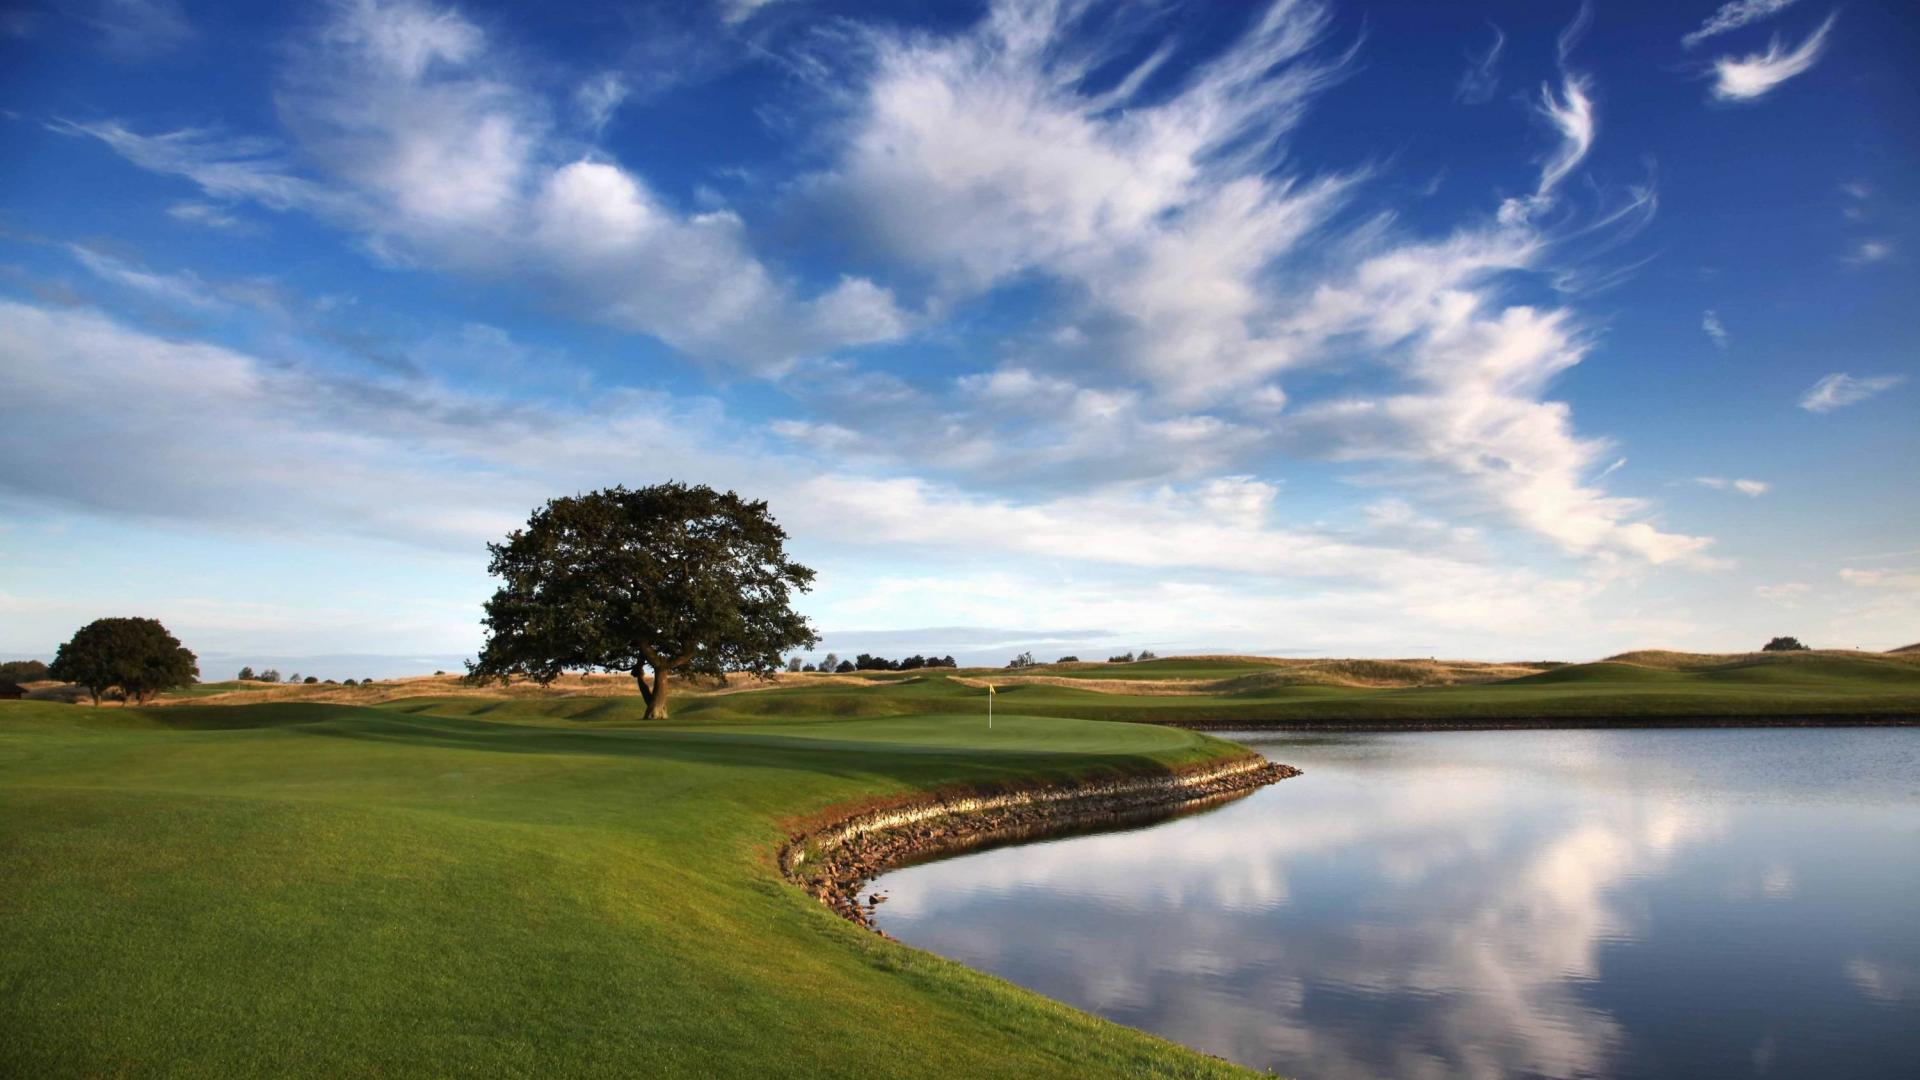 Golf Course Sky Wallpaper For Android #12310 Wallpaper | Wallpaper ...